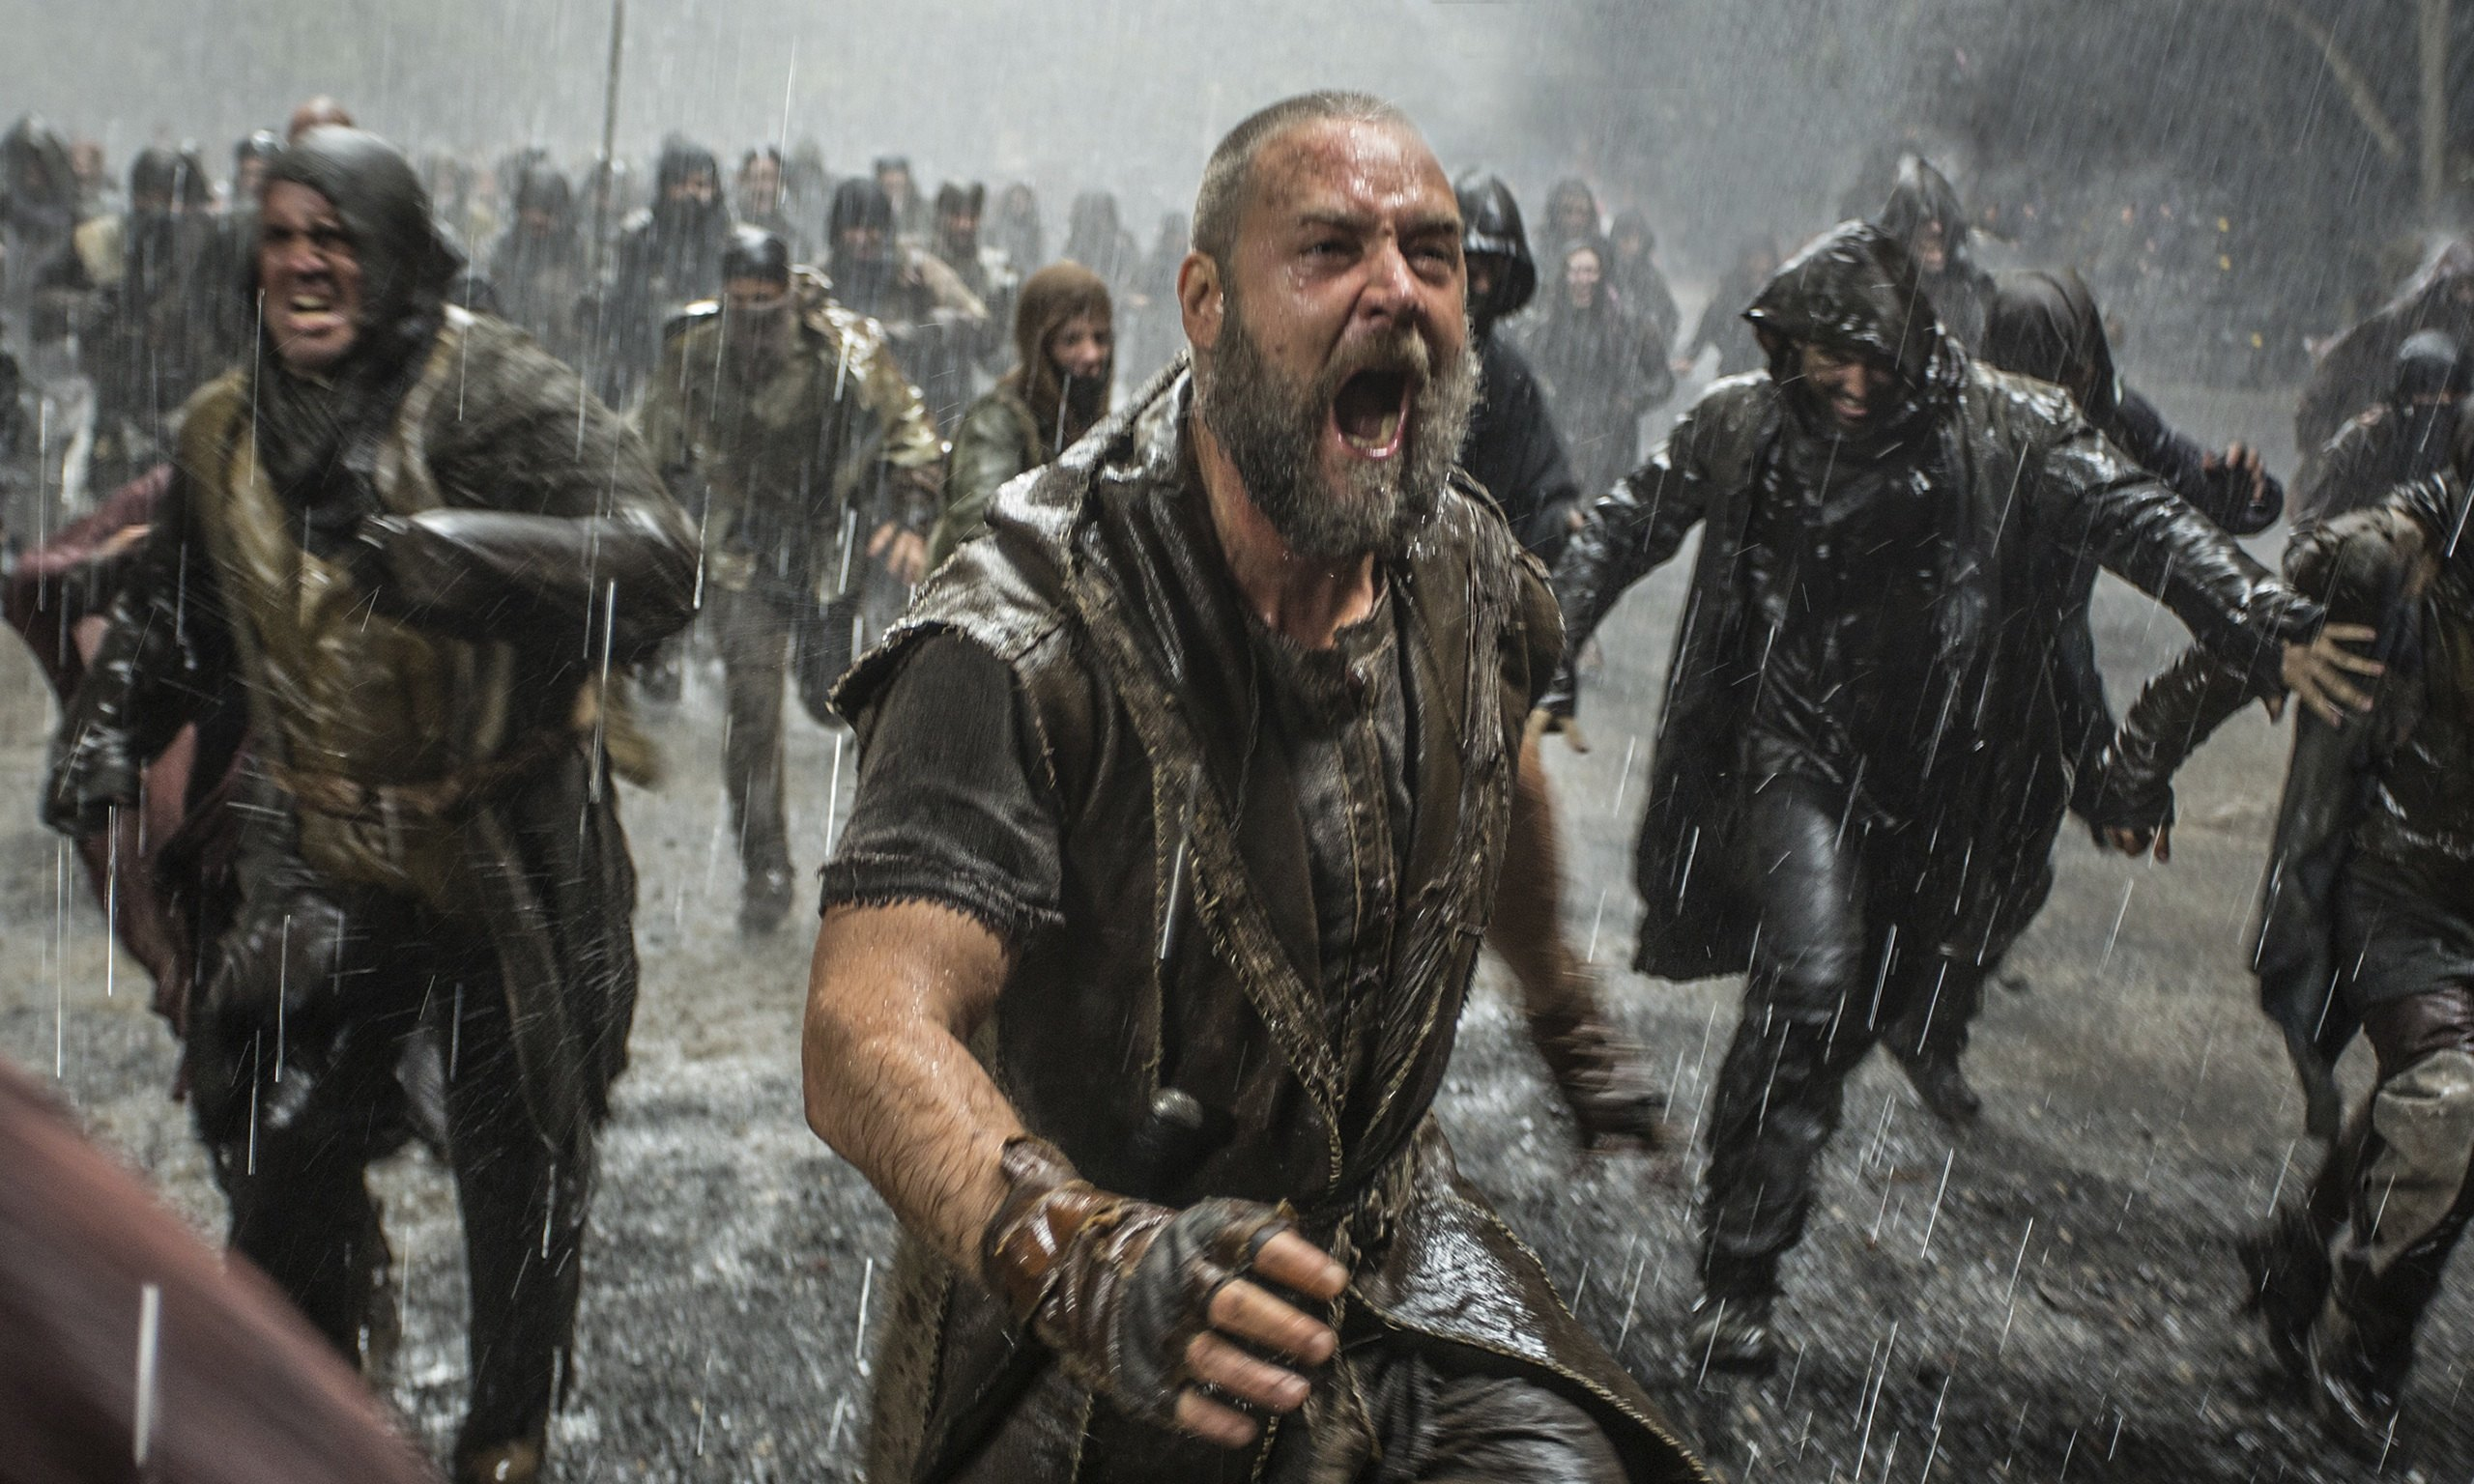 russell-crowe-as-noah-014-noah-s-russell-crowe-says-that-banning-was-to-be-expected